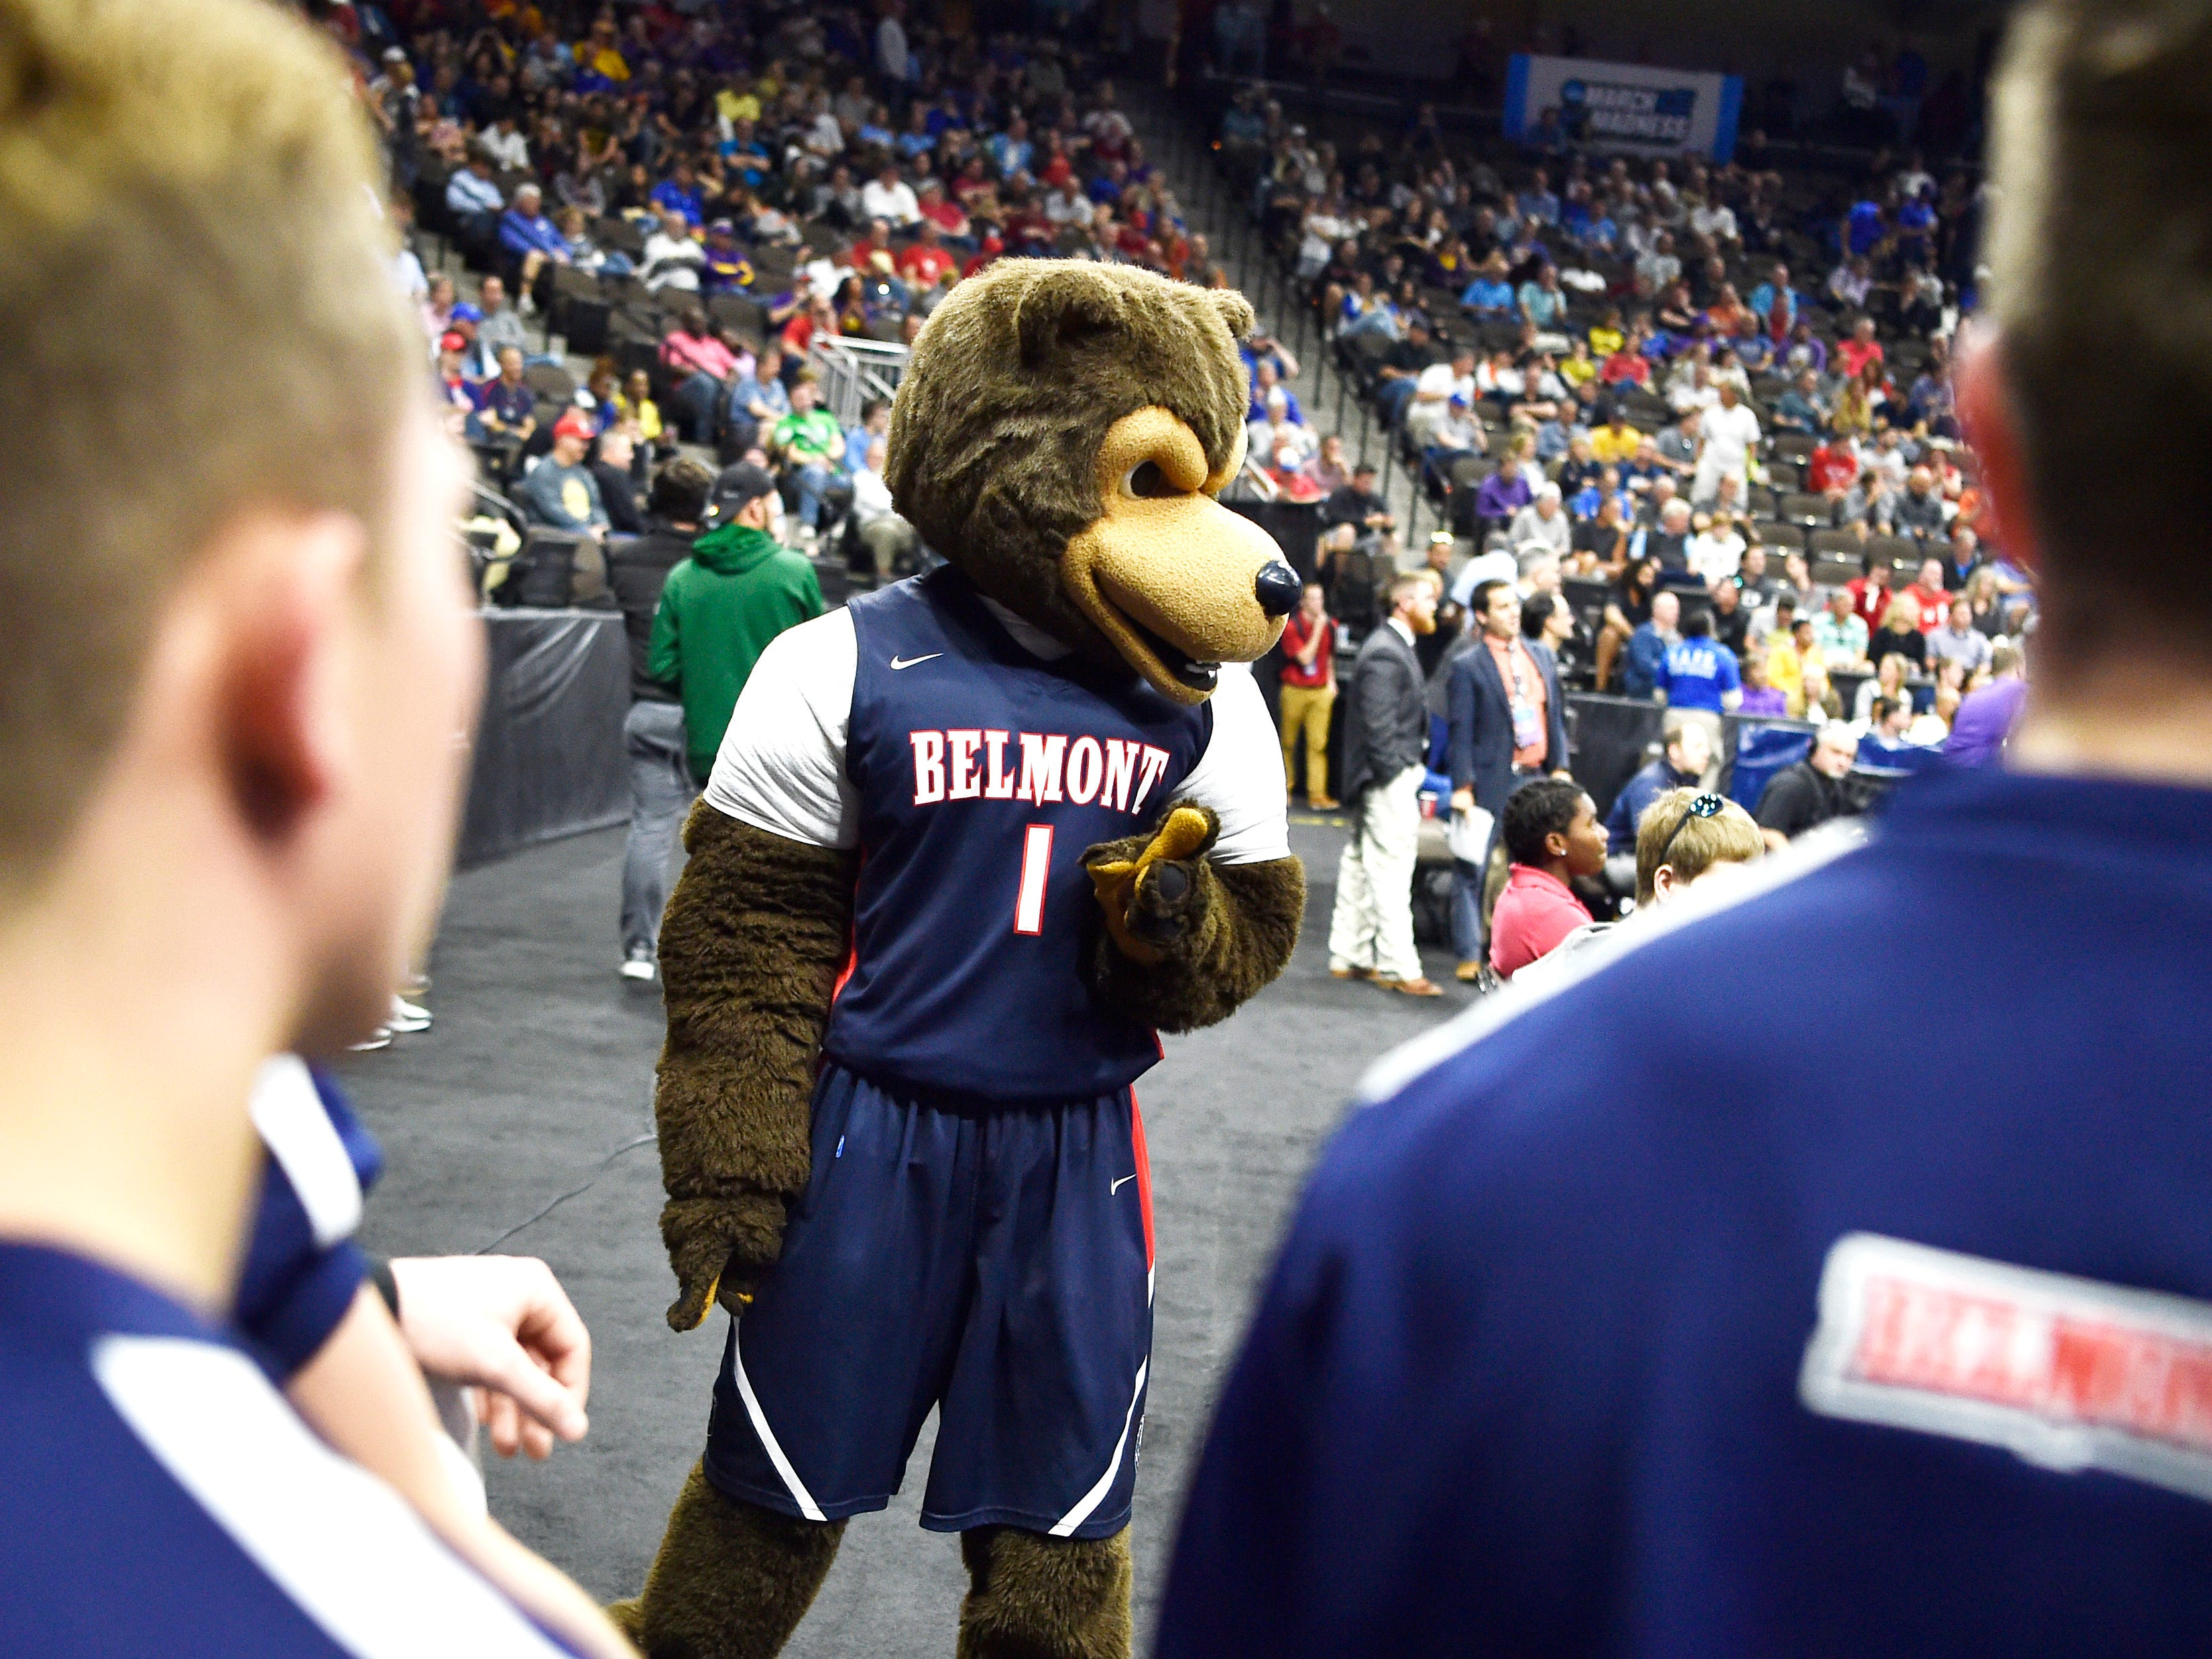 Bruiser, the Belmont mascot, waits on the sidelines of the LSU-Yale game for the start of the Bruins' first-round NCAA college basketball tournament game against Maryland at VyStar Veterans Memorial Arena in Jacksonville, Fla., Thursday, March 21, 2019.